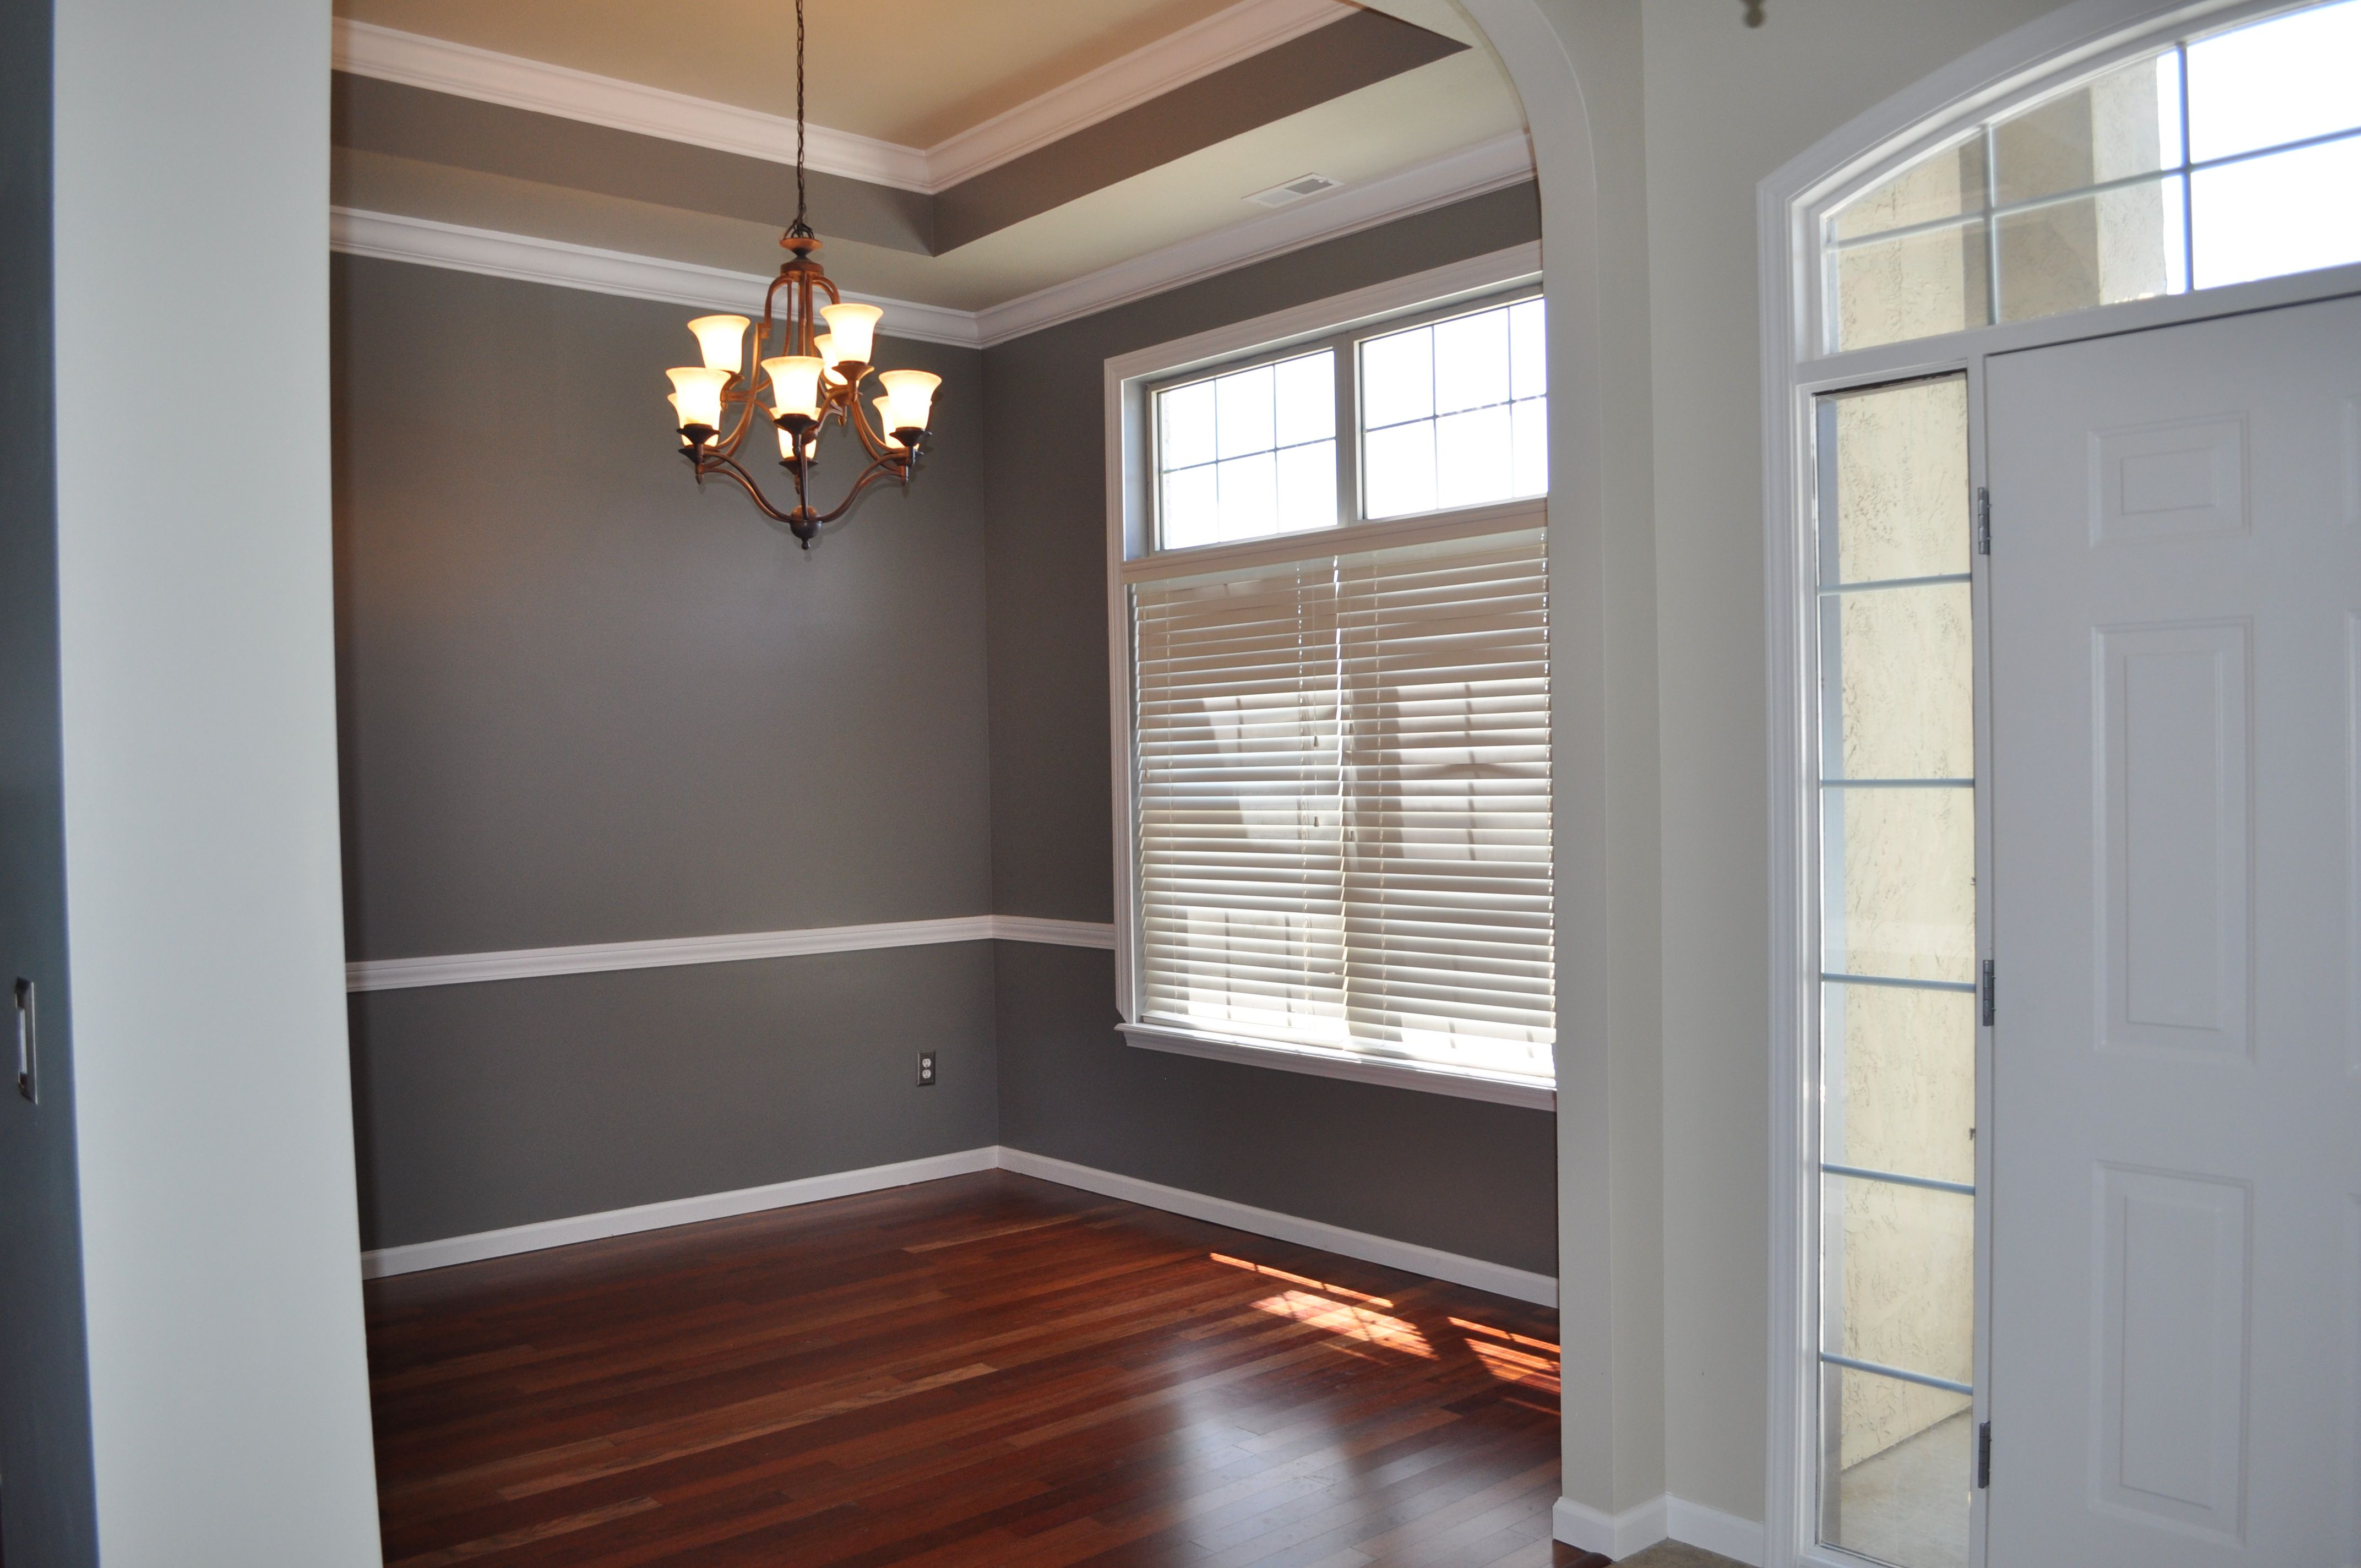 painting ideas sherwin williams